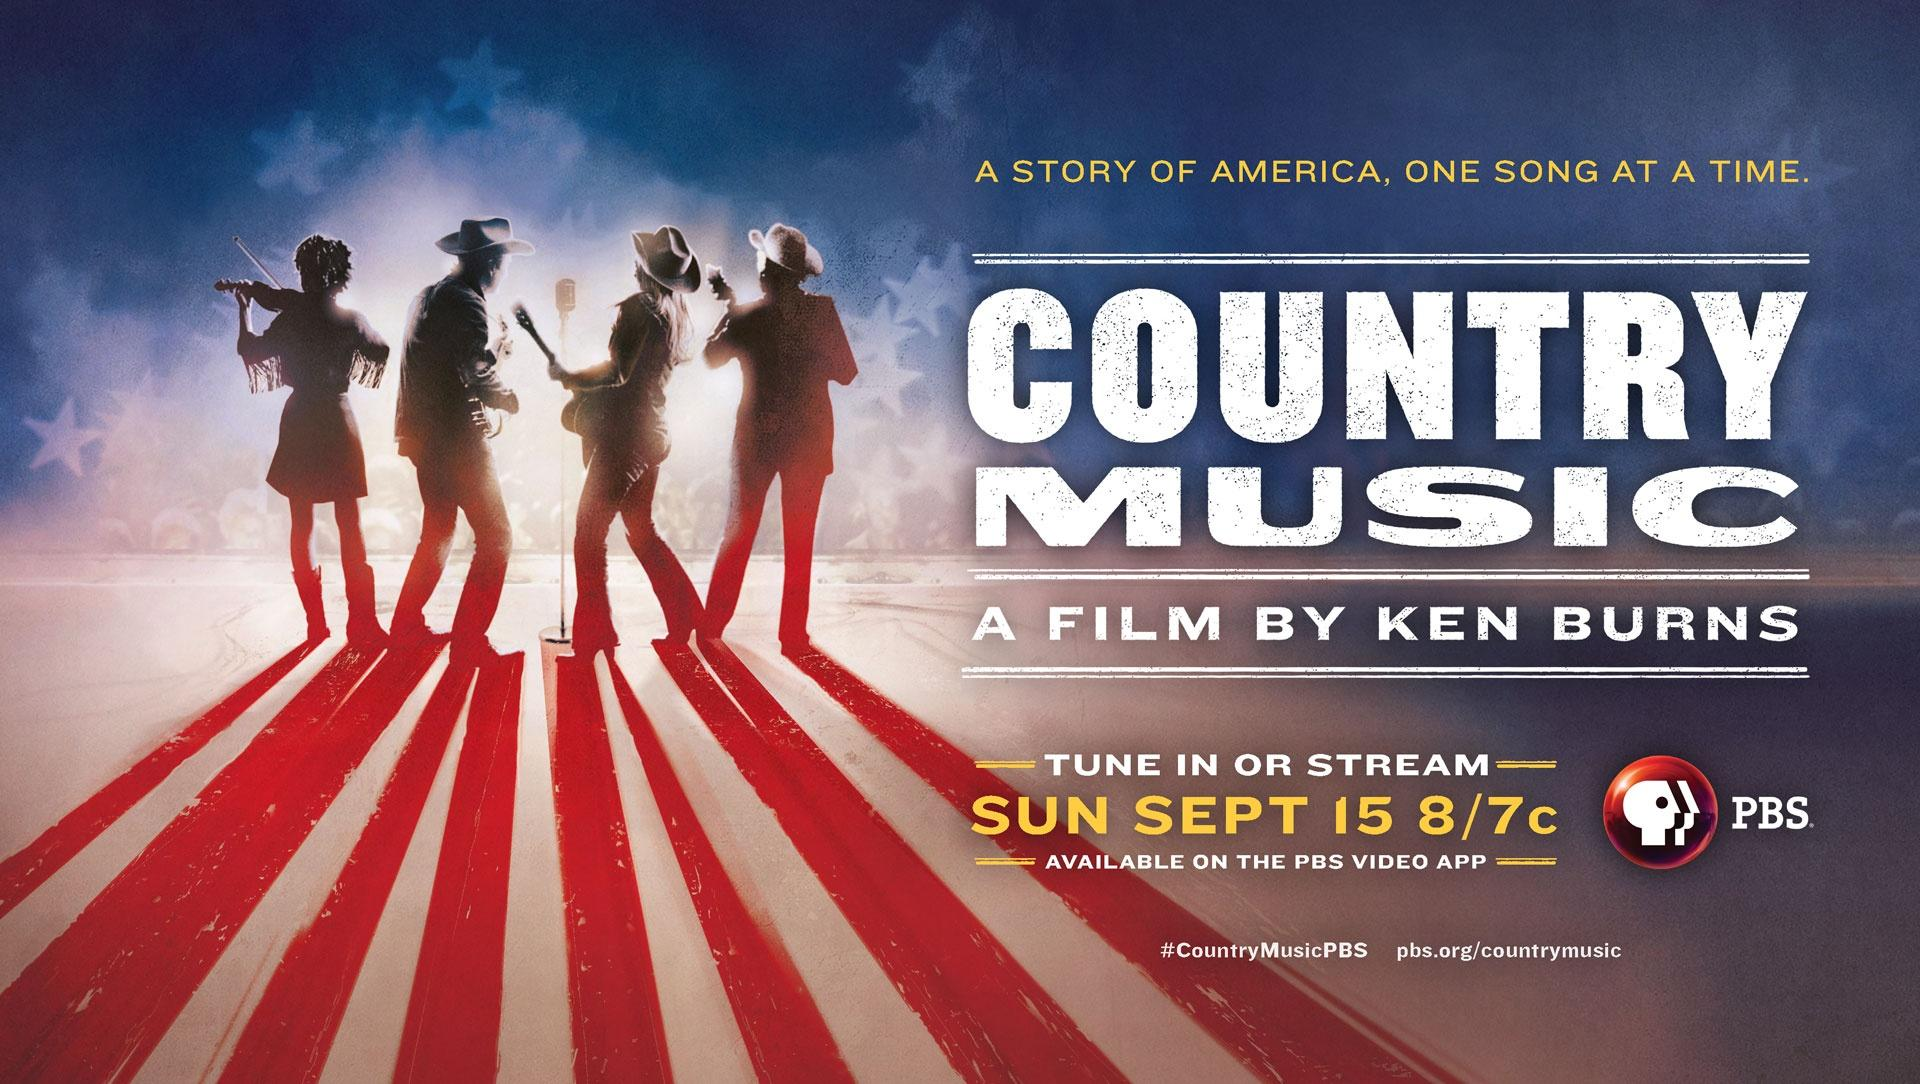 A Story of America Once Song at a Time. Country Music A film by Ken Burns - Tune in or stream Sun Sept 15 8/7c Available on the PBS Video App #CountryMusicPBS